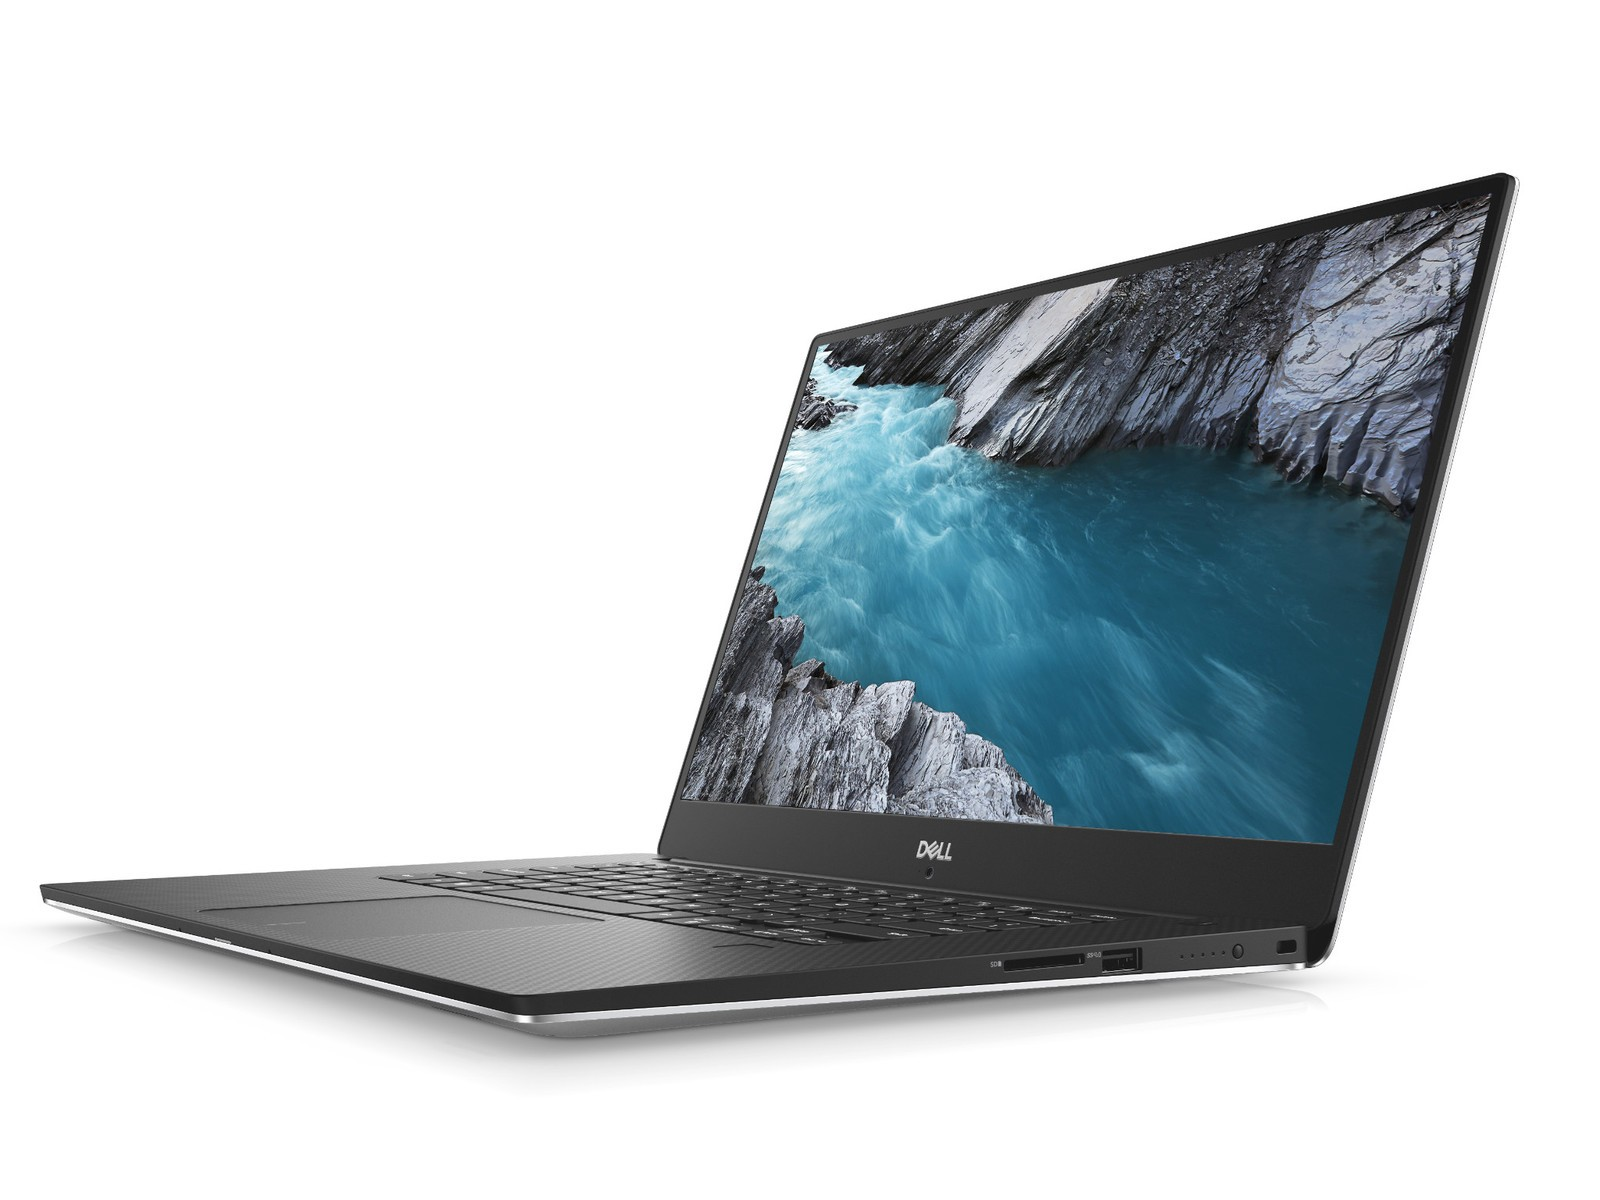 Dell XPS 15 Laptop giveaway